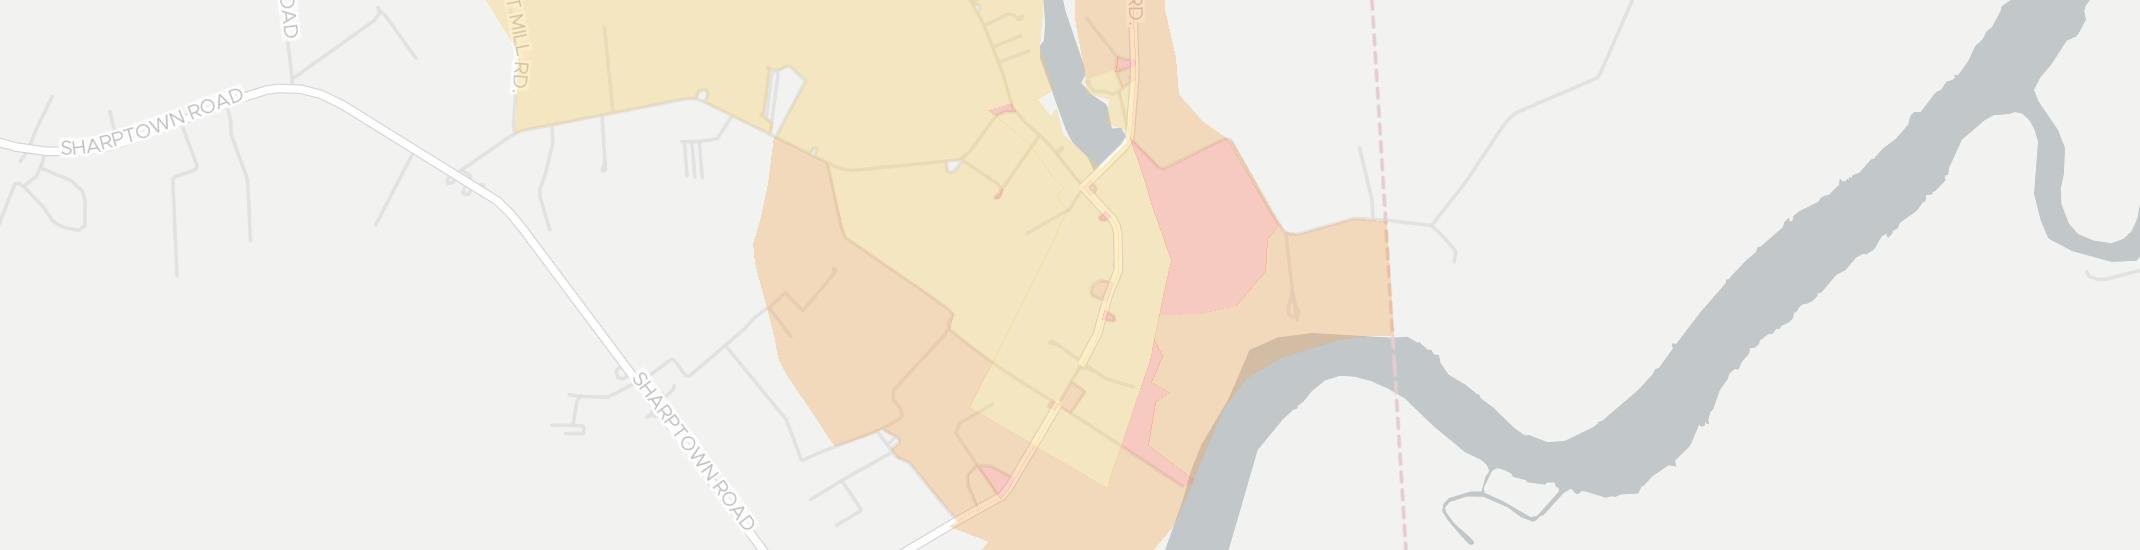 Galestown Internet Competition Map. Click for interactive map.